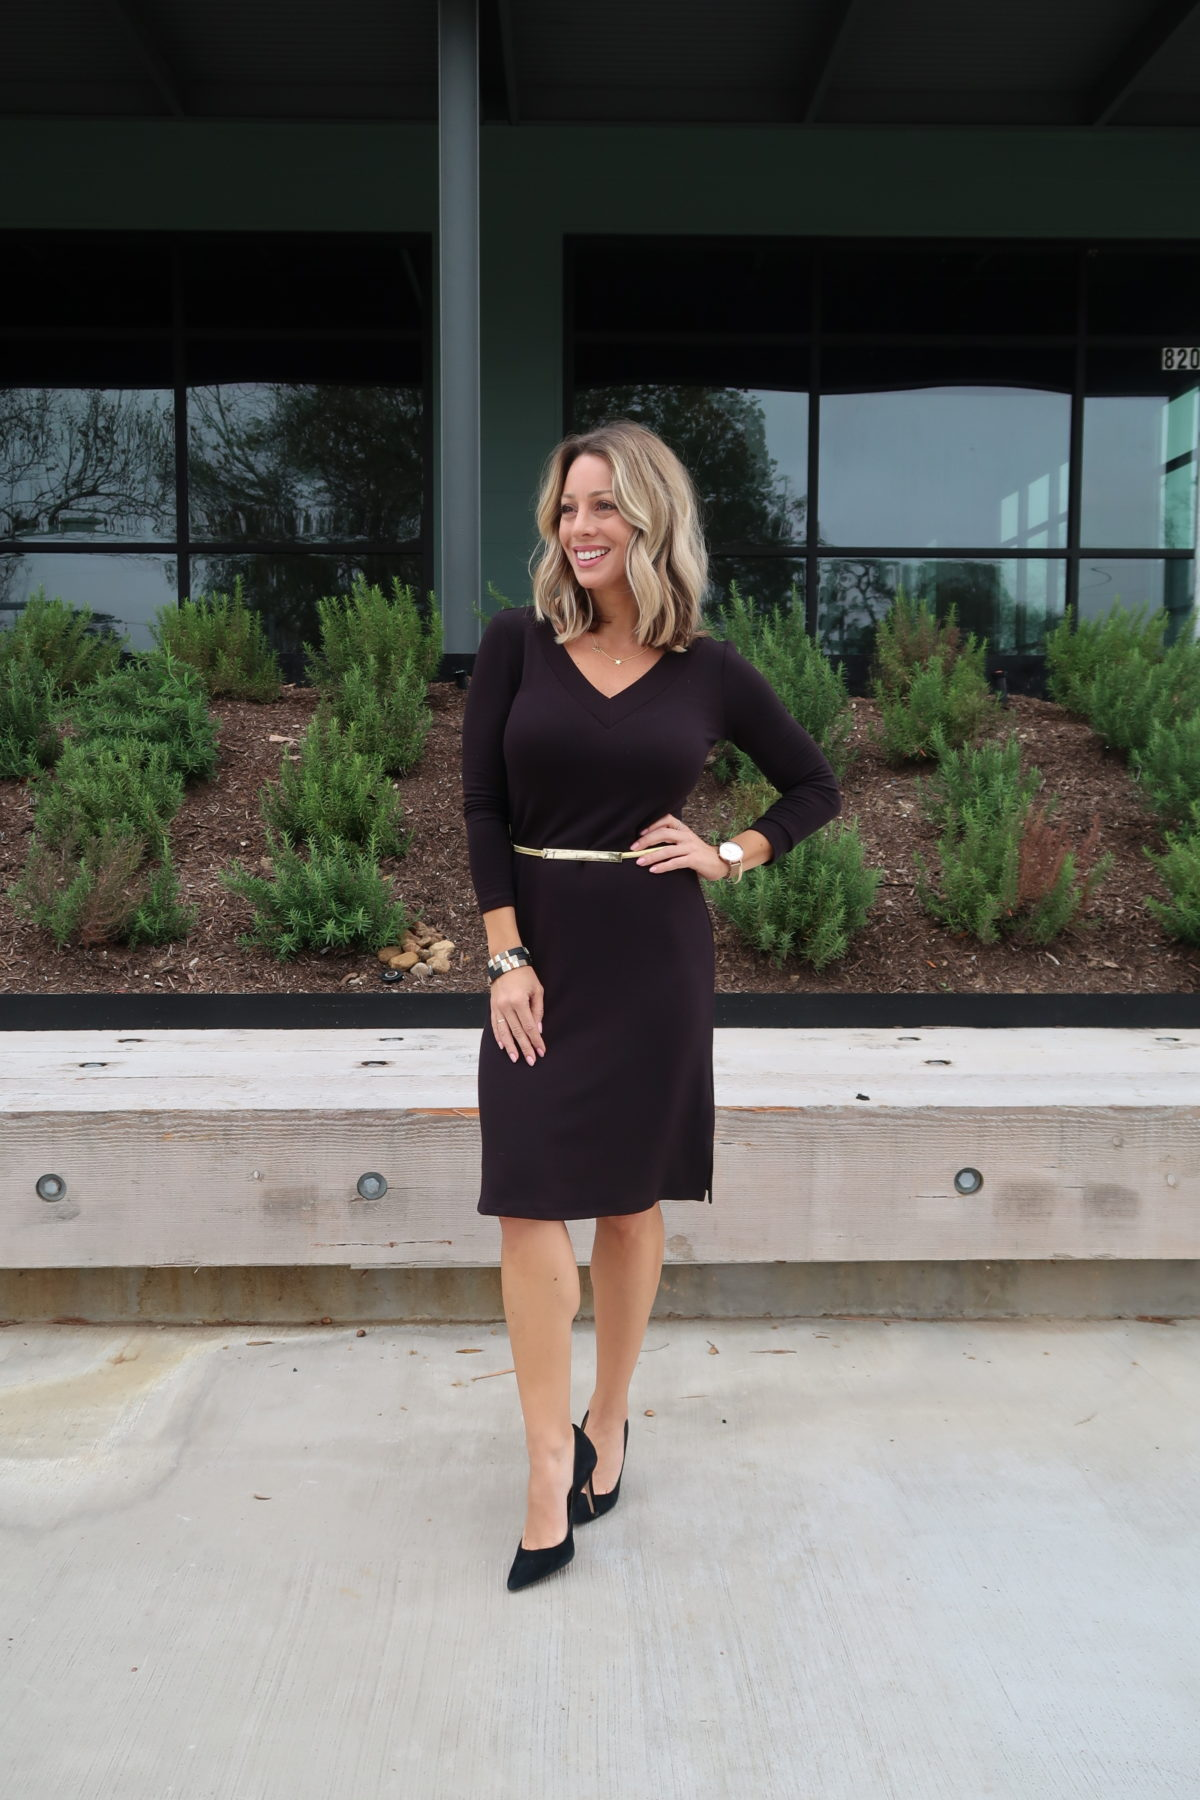 Long Sleeve Knit Dress, Black Heels, Gold Belt